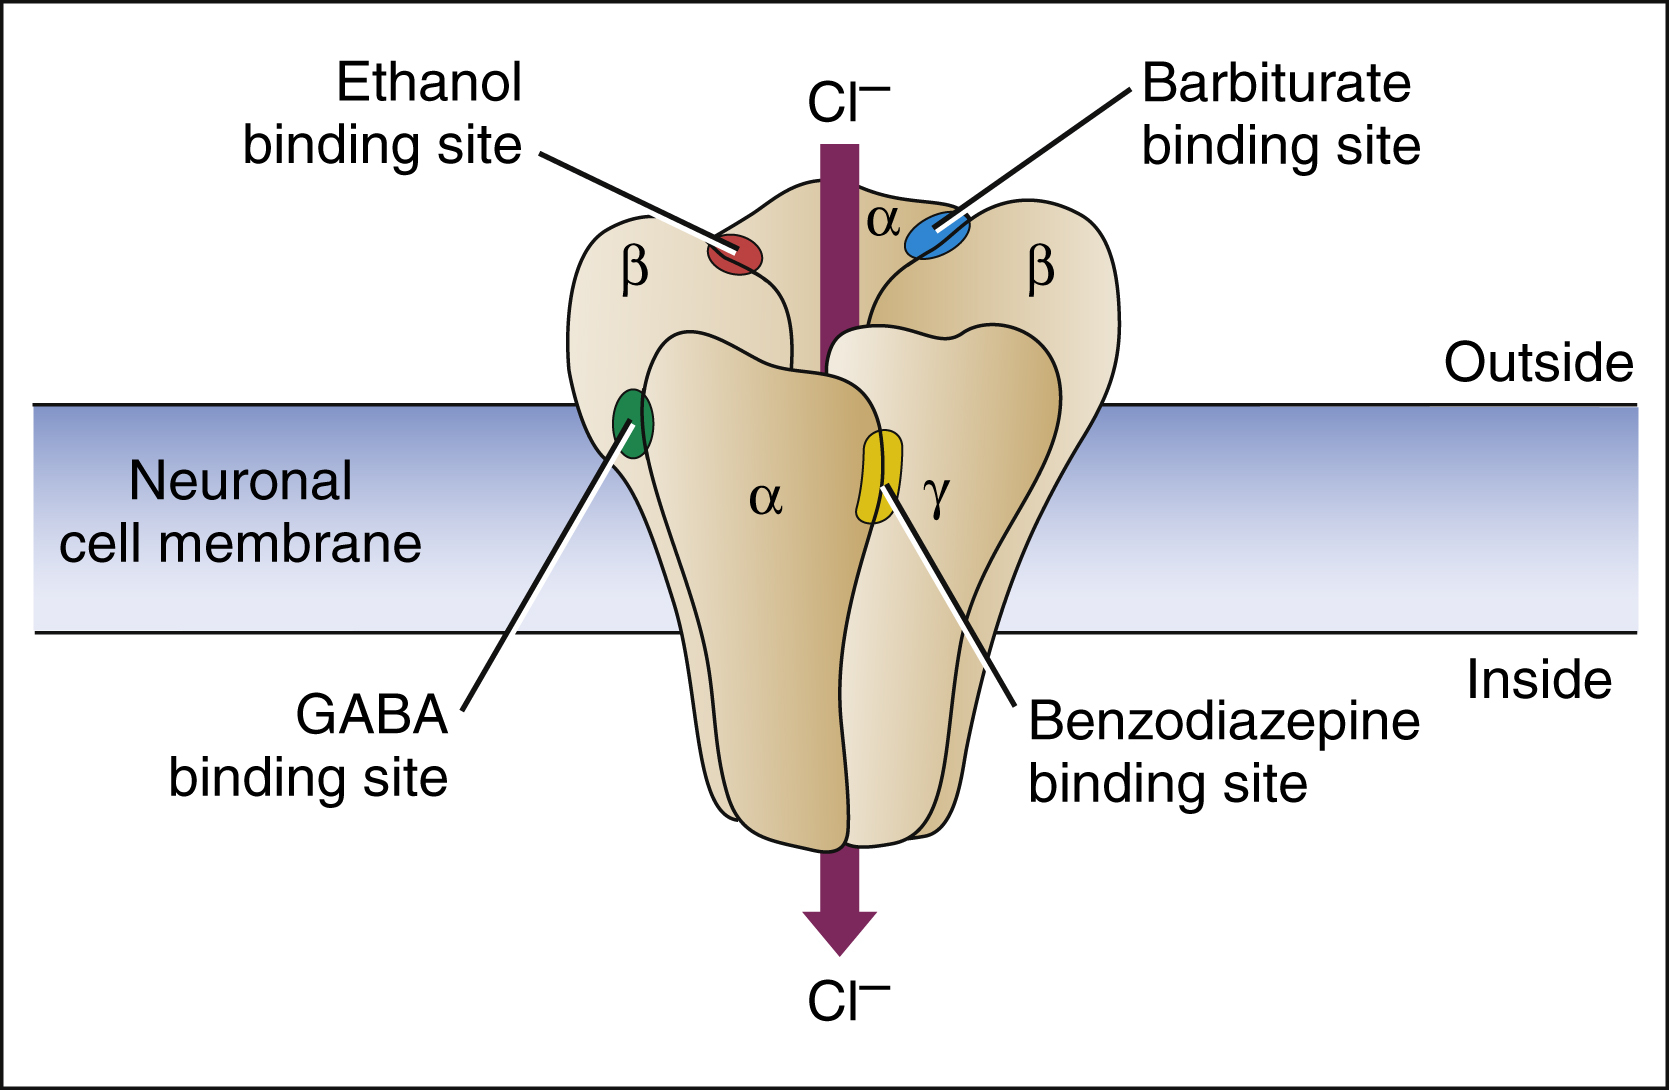 What Are Barbiturates Made